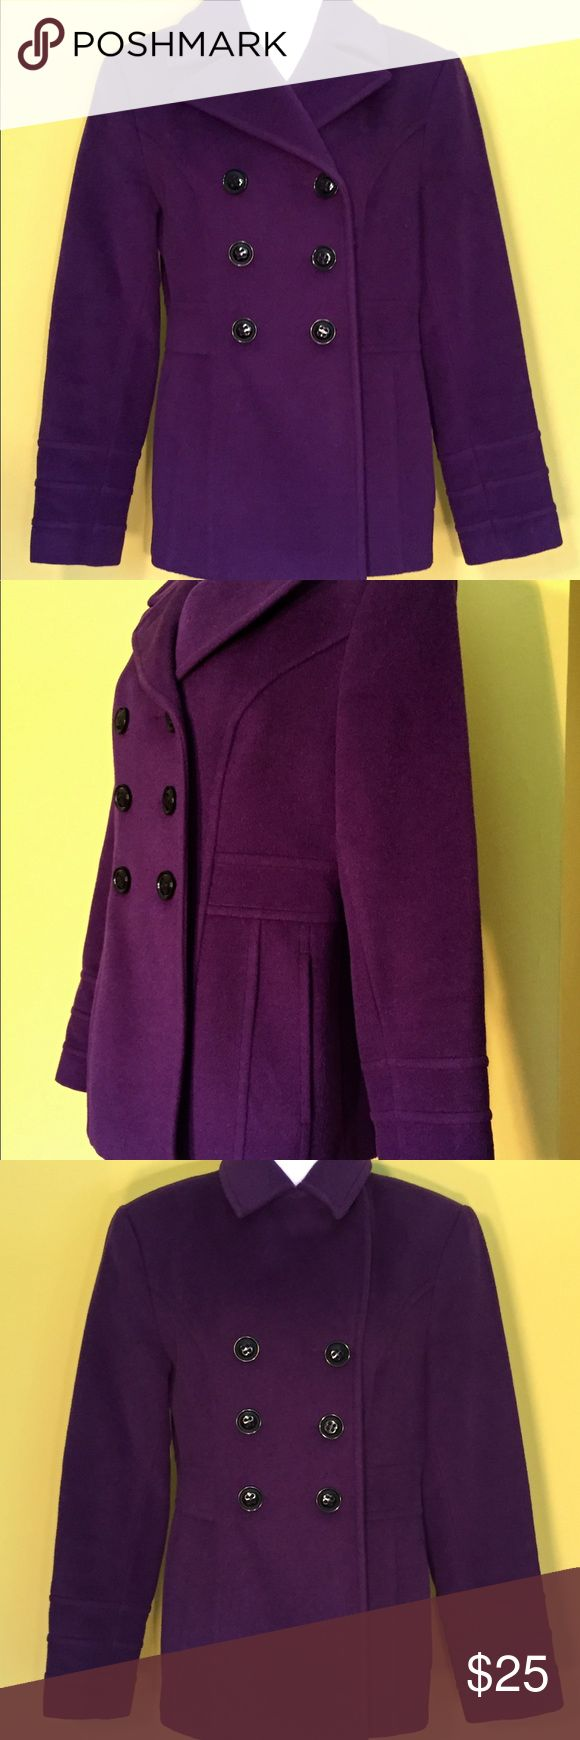 Plum St. John's Bay Wool Pea Coat Size Small Get ready for cool weather with this plum St. John's Bat wool blend women's pea coat. The size small button down coat covers the hips. It features exterior pockets and 1 interior pocket.  Browse our other items at Fb.me/TheRovingCloset St. John's Bay Jackets & Coats Pea Coats